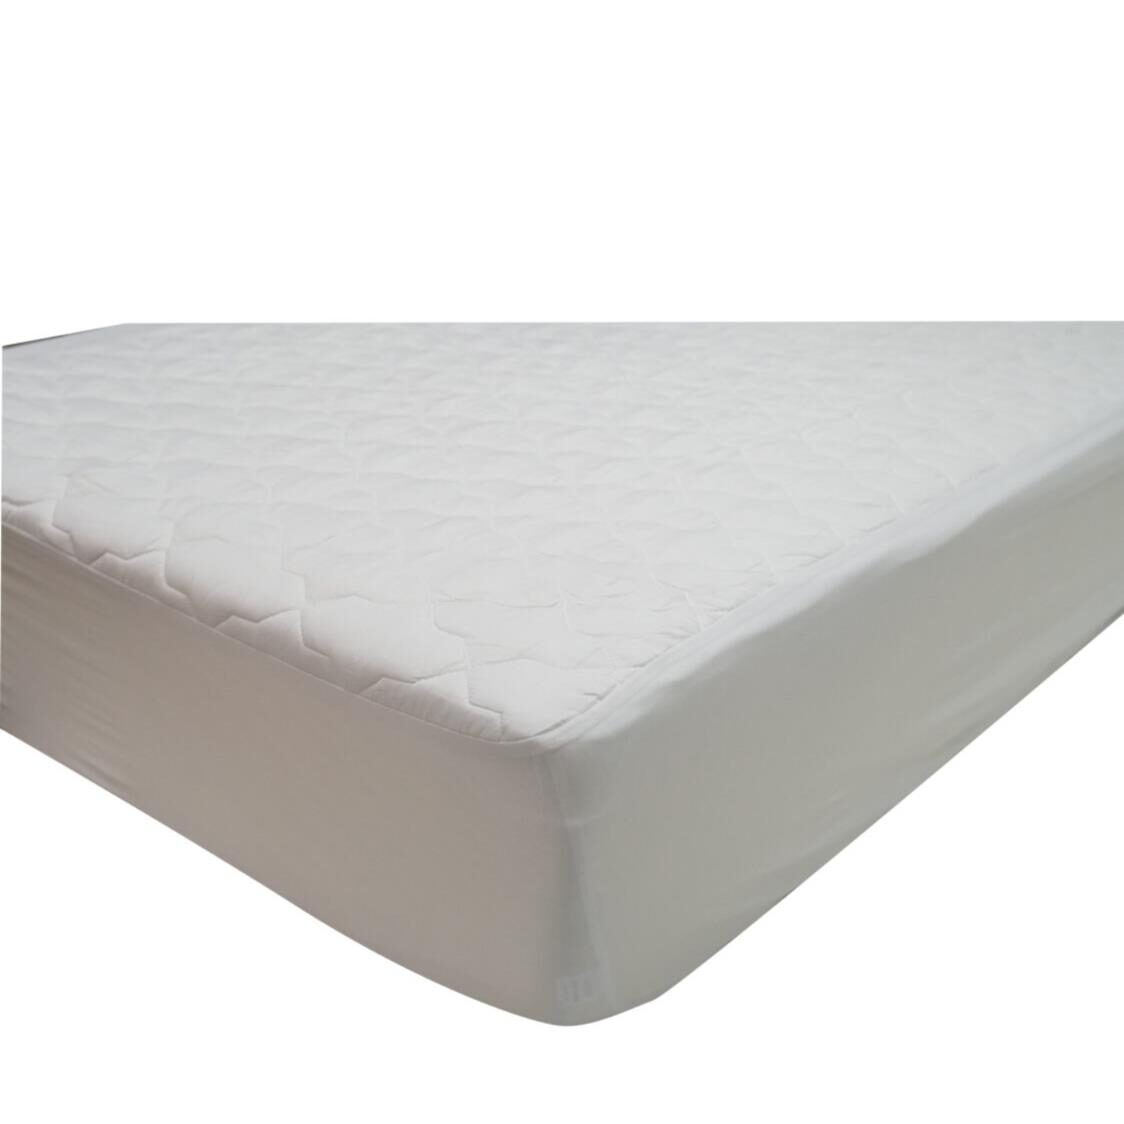 Claire De Solene Fitted Mattress Protector